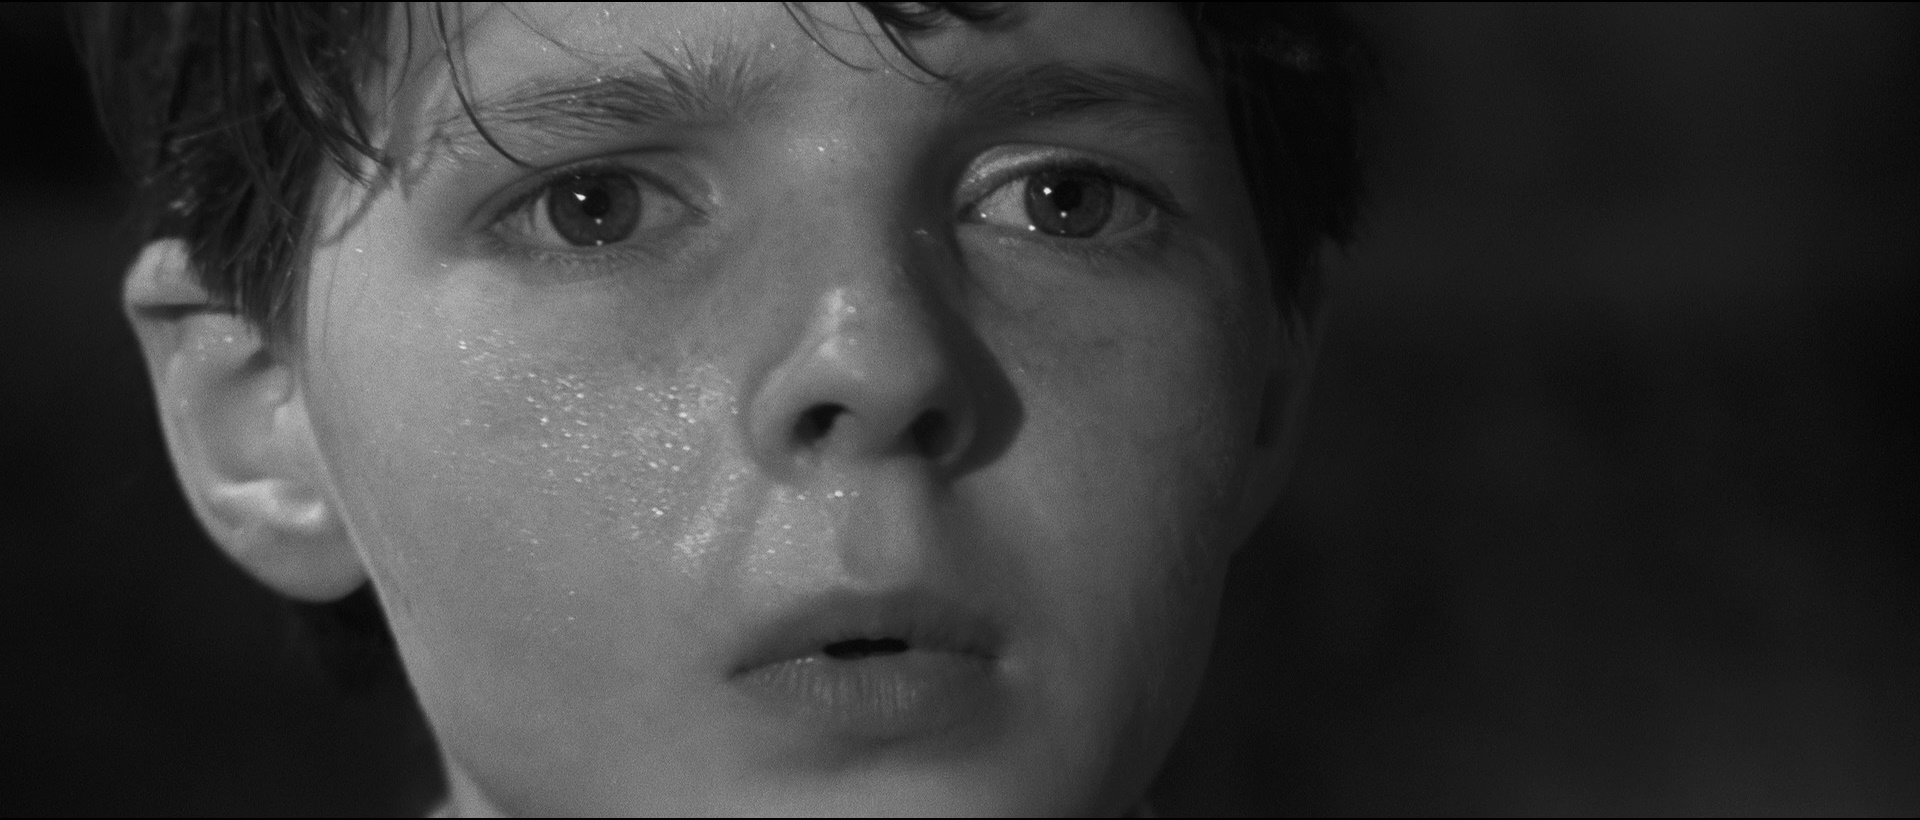 the-innocents-close-up